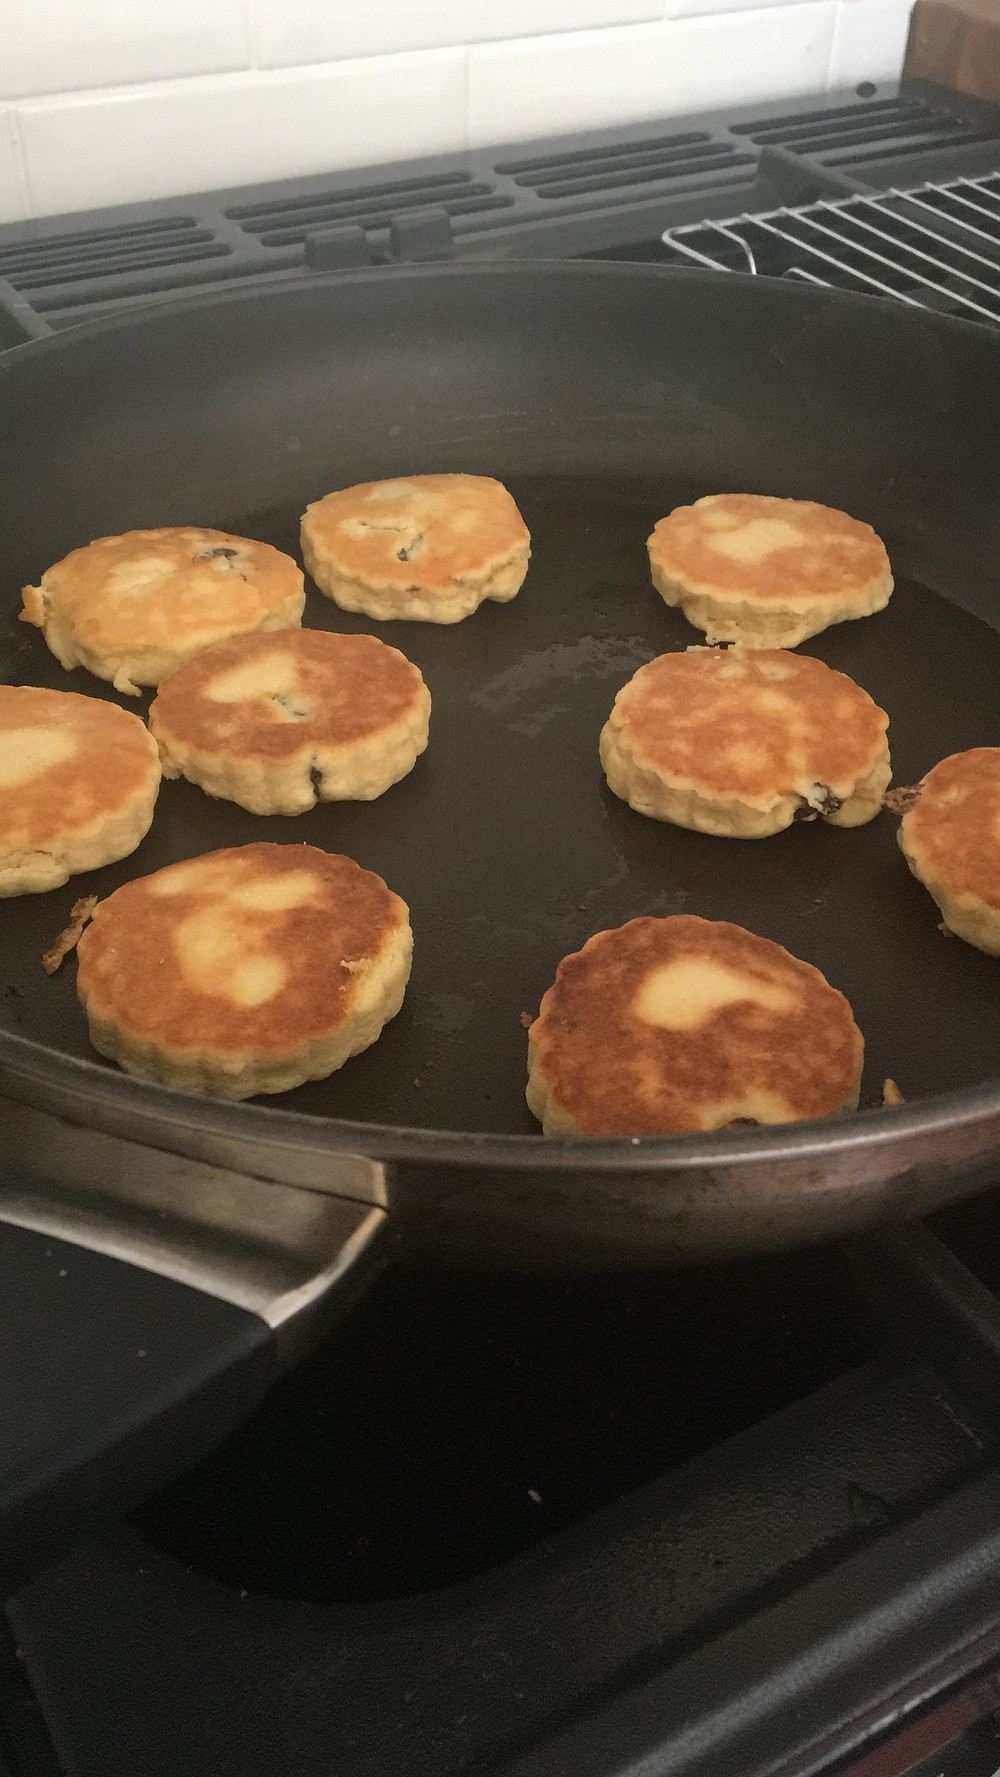 Welsh cakes cooking in the pan